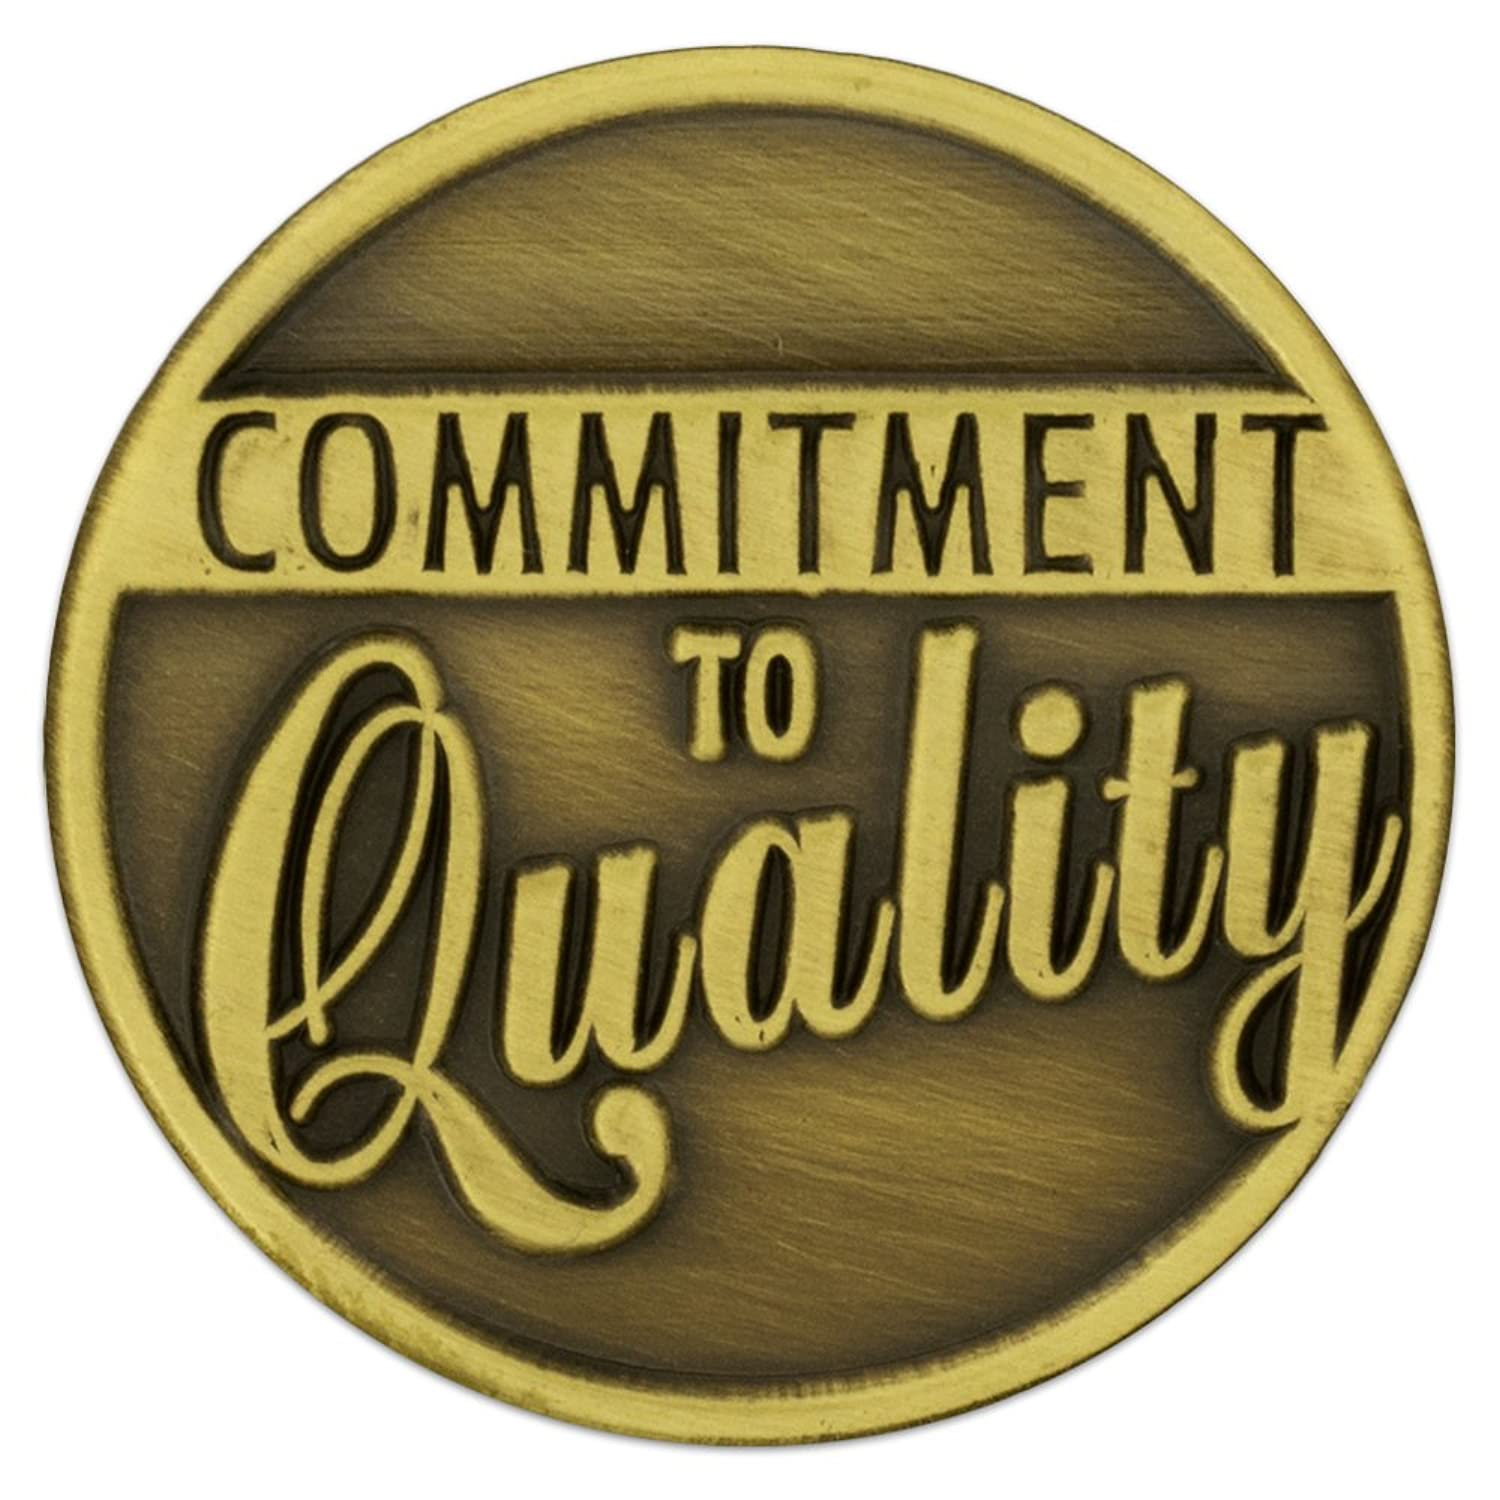 PinMart Antique Bronze Commitment to Quality Corporate Lapel Pin